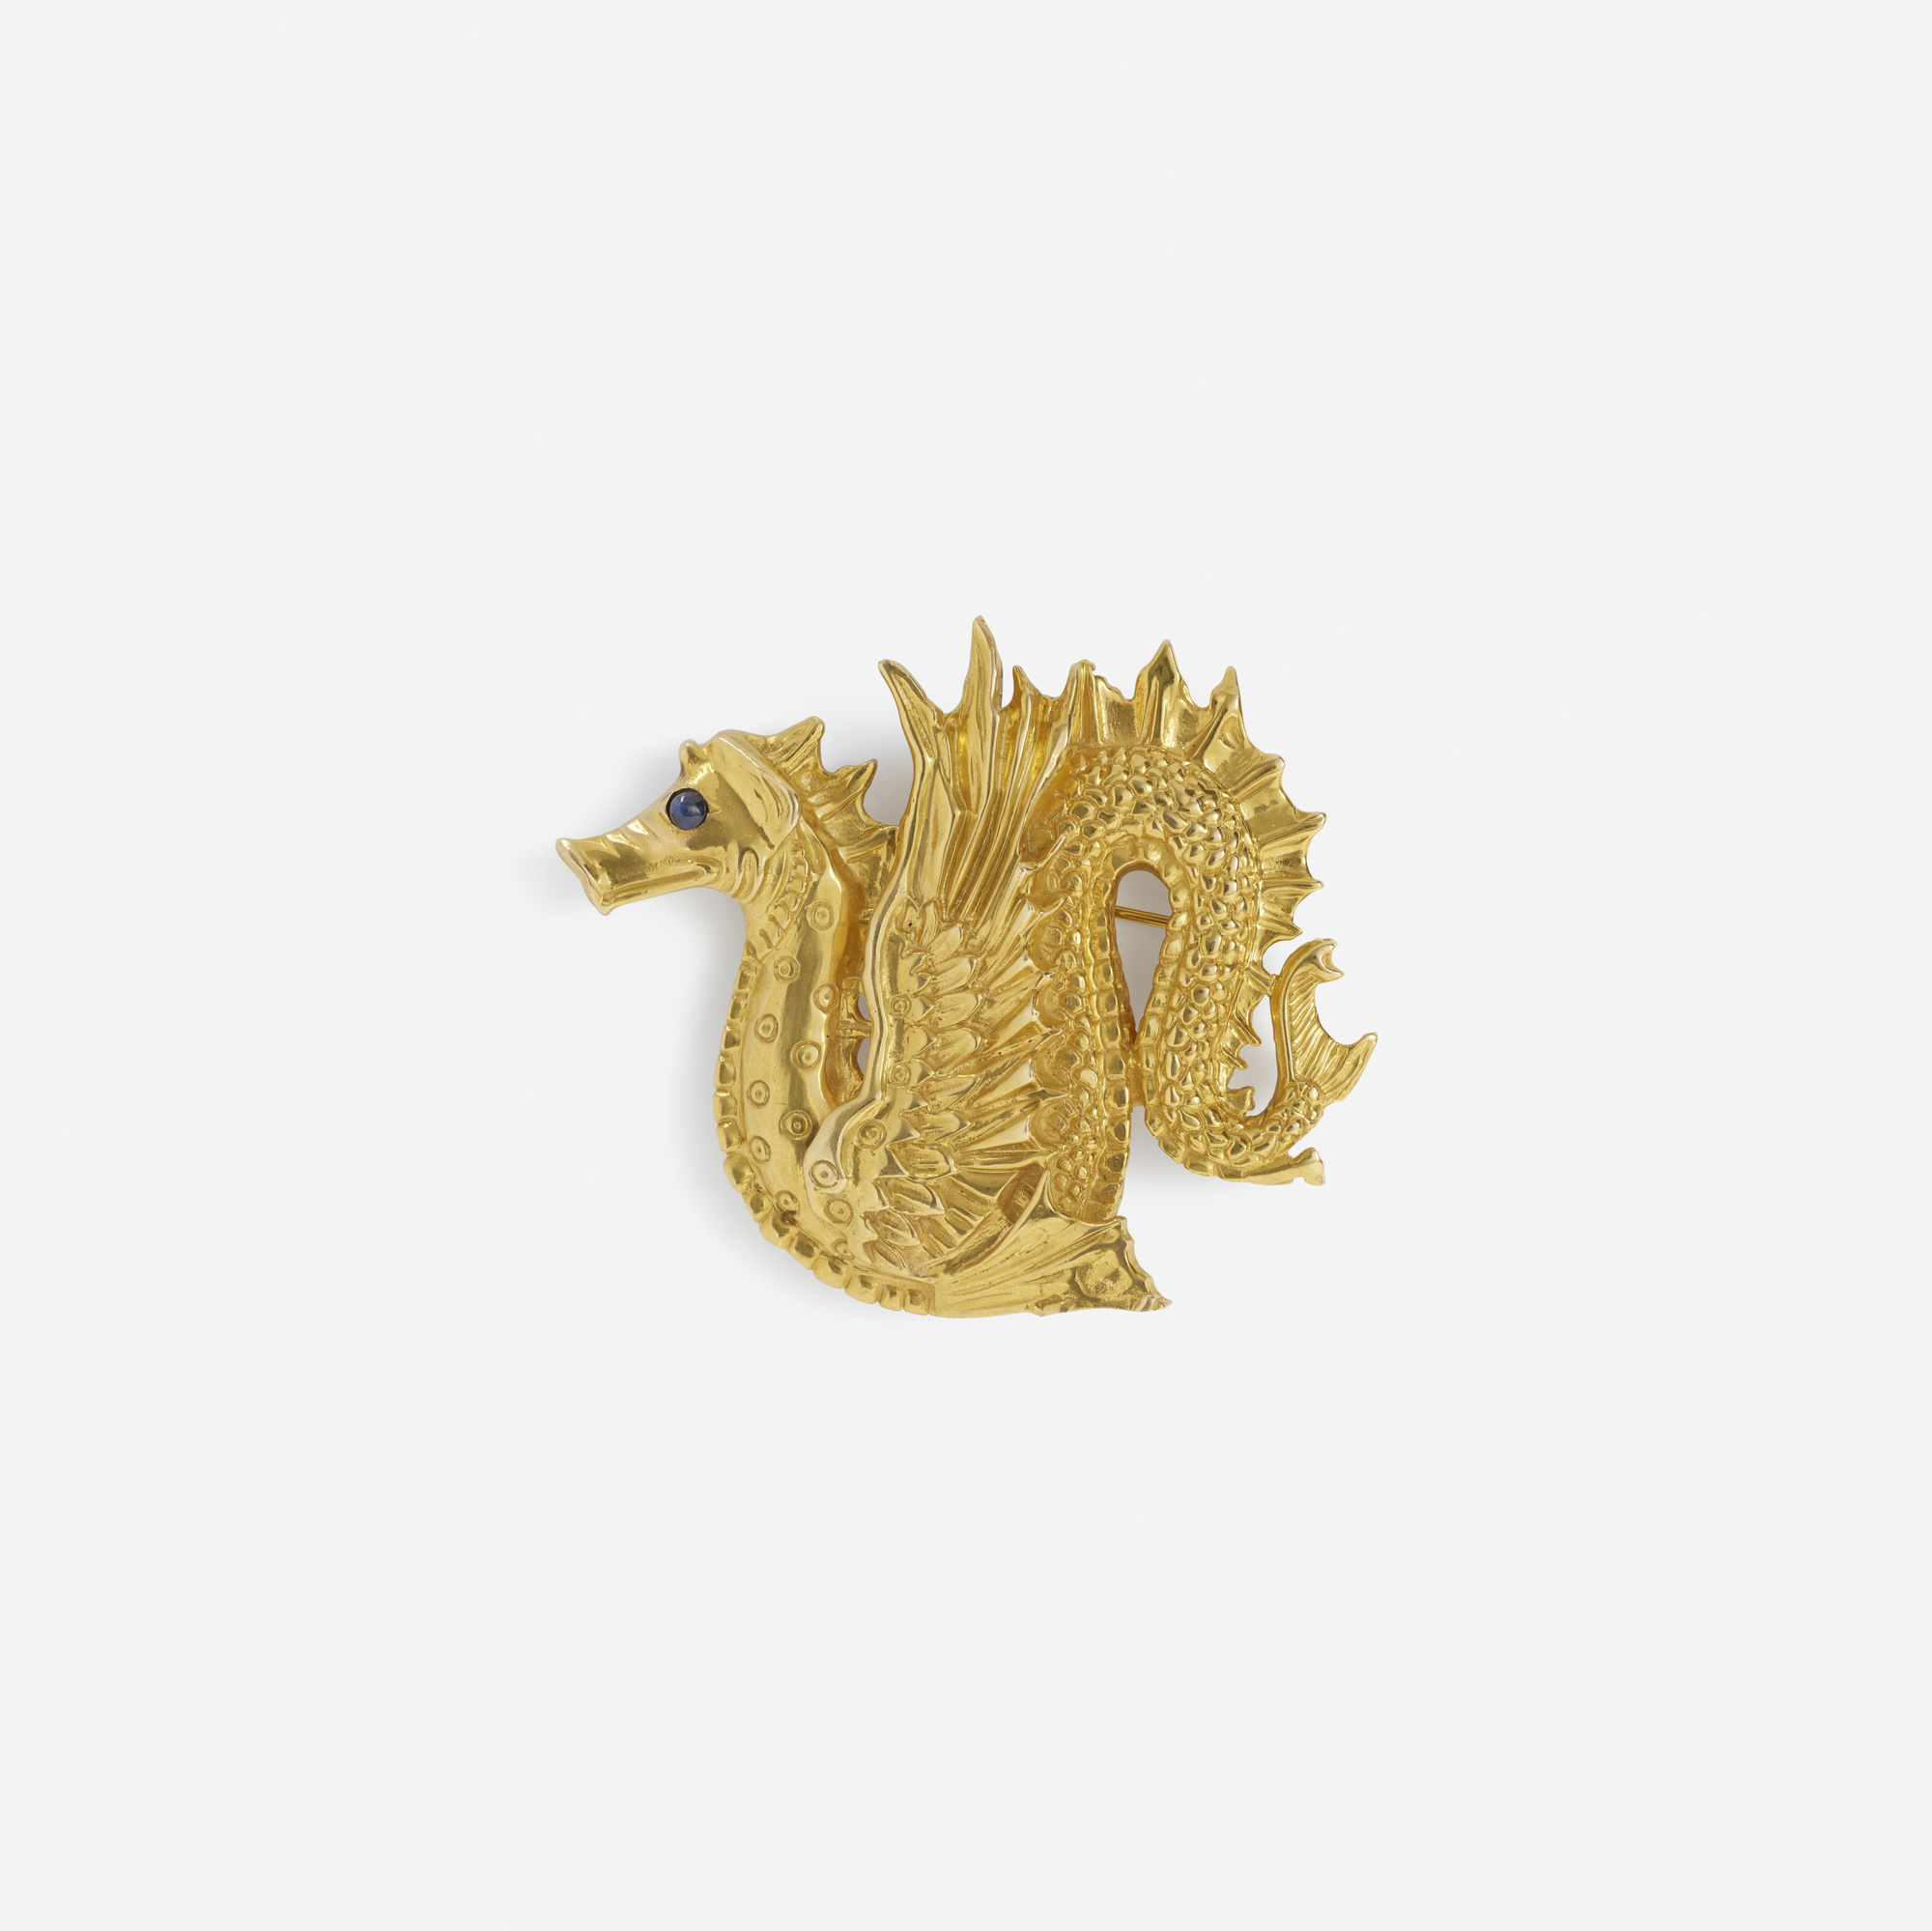 139:  / A gold brooch (1 of 1)